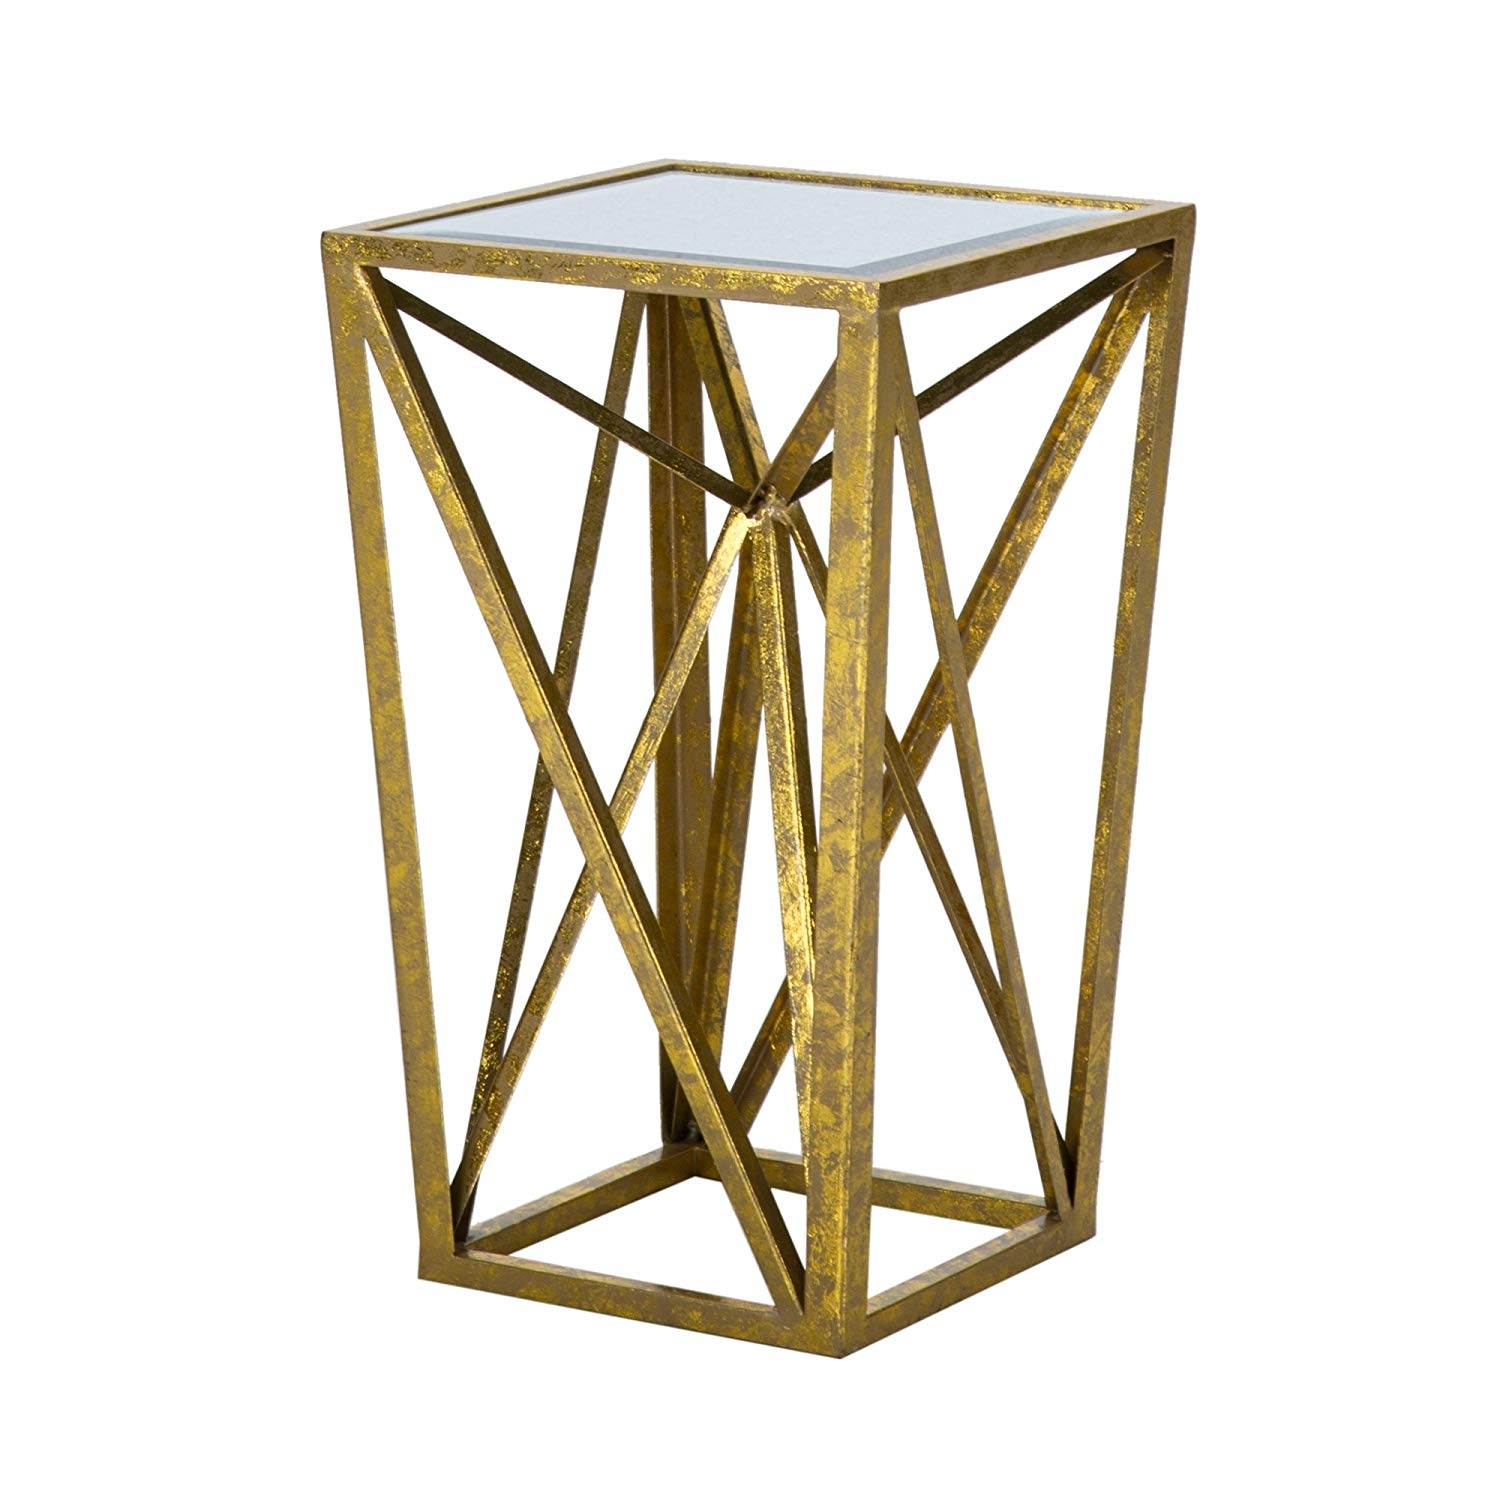 madison park zee accent tables mirror glass metal with matching mirrors side table gold angular design modern style end piece top hollow round outside benches pier retro chairs